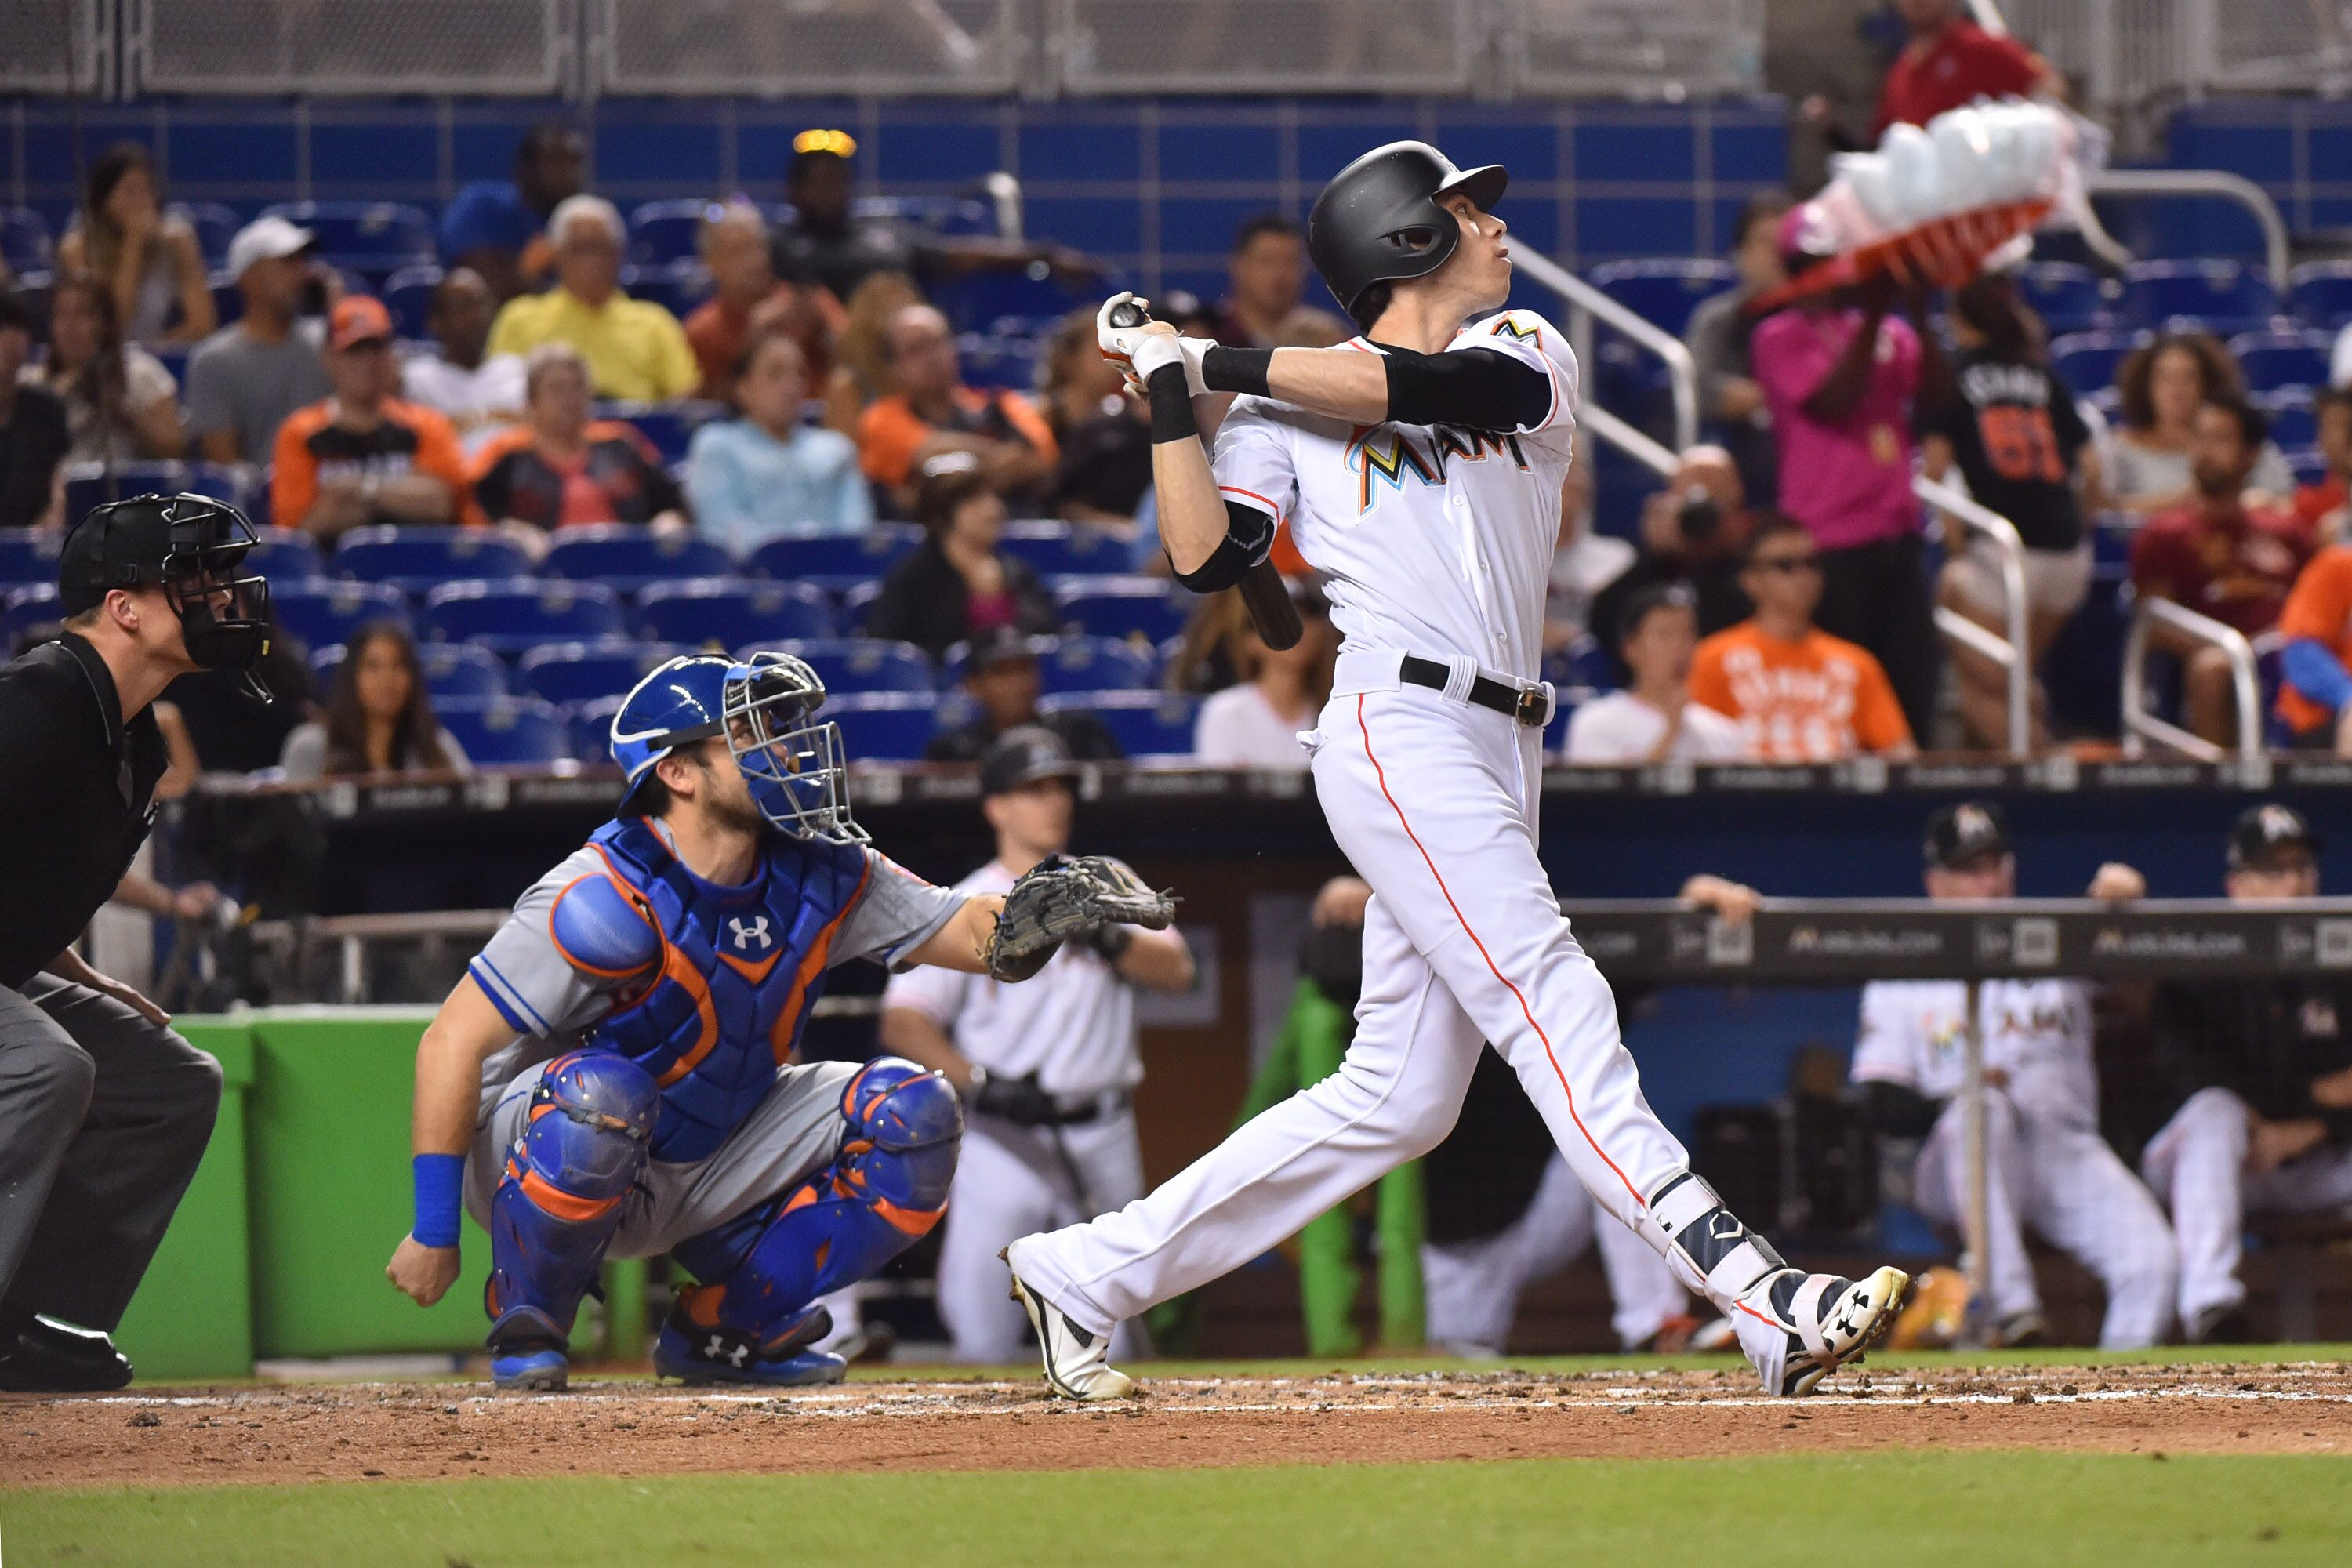 849766756-new-york-mets-v-miami-marlins.jpg